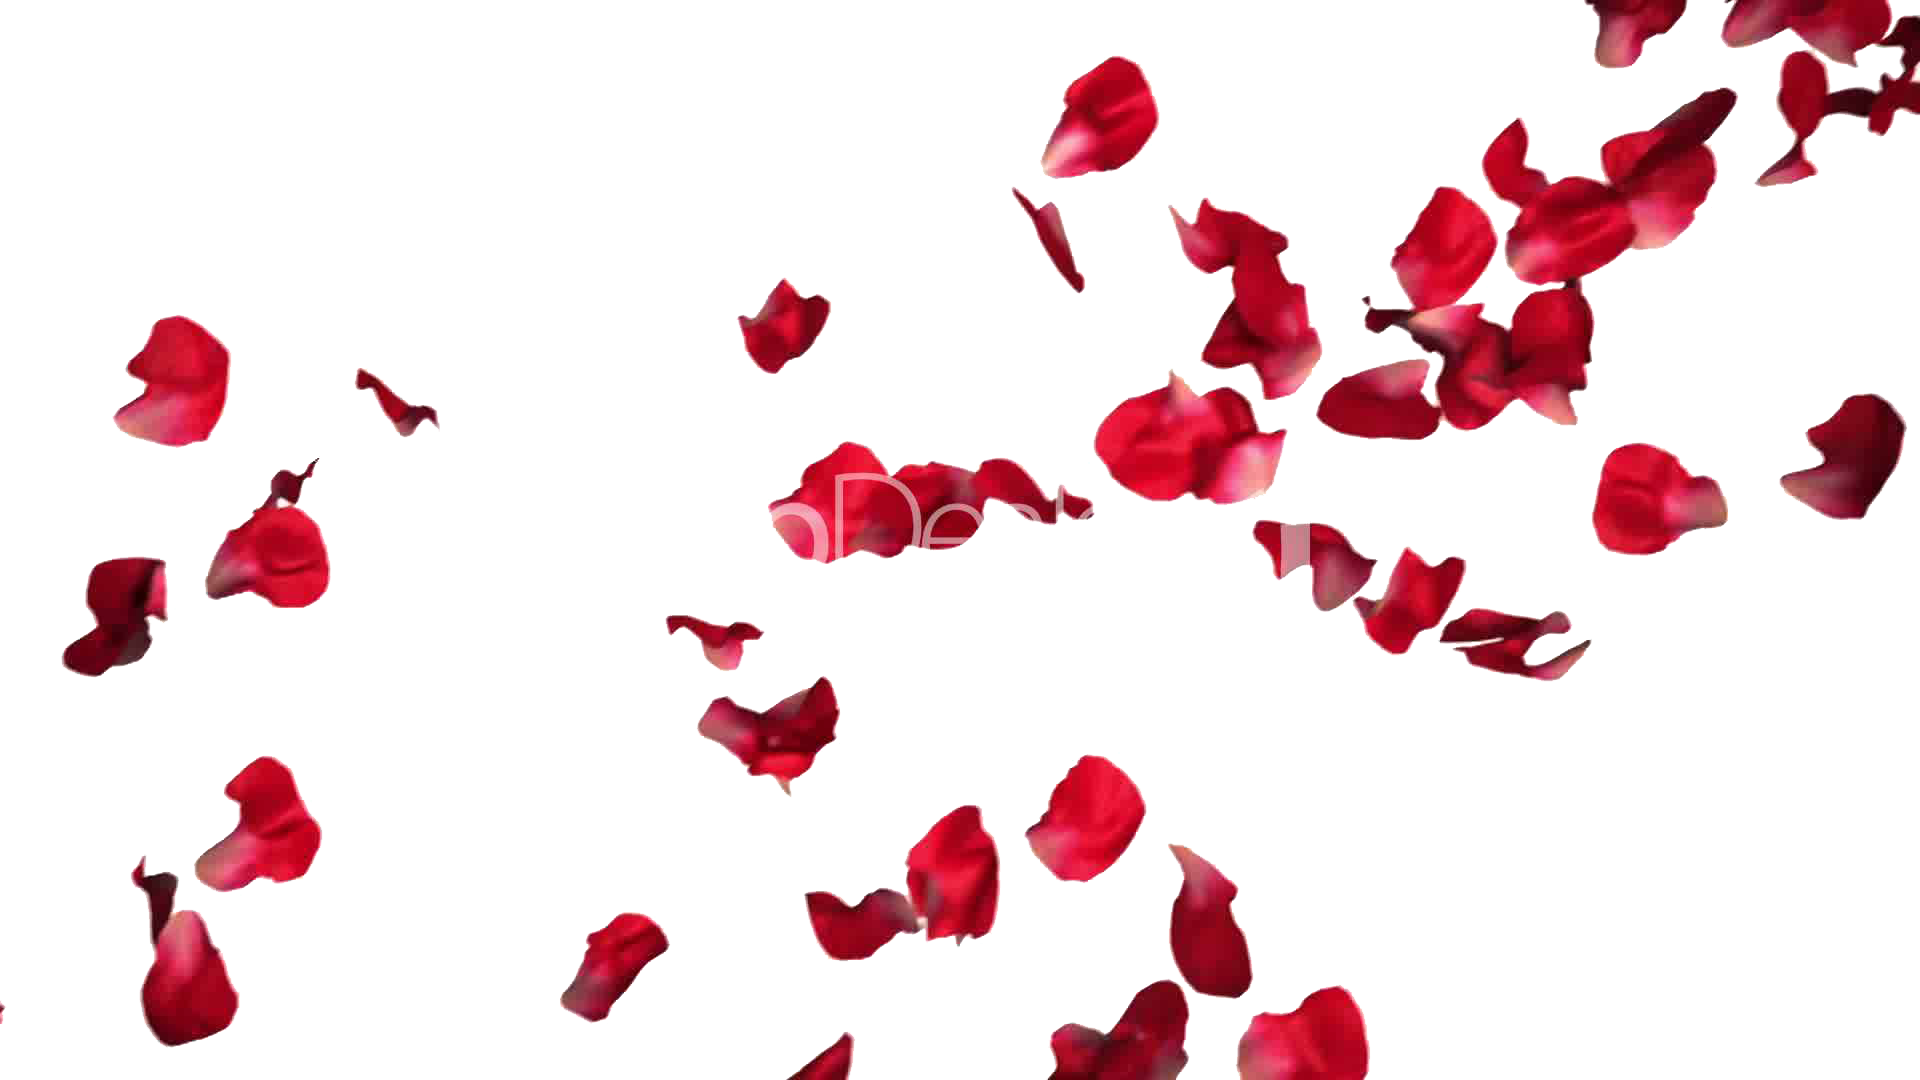 Flower petal png. Download rose petals hq